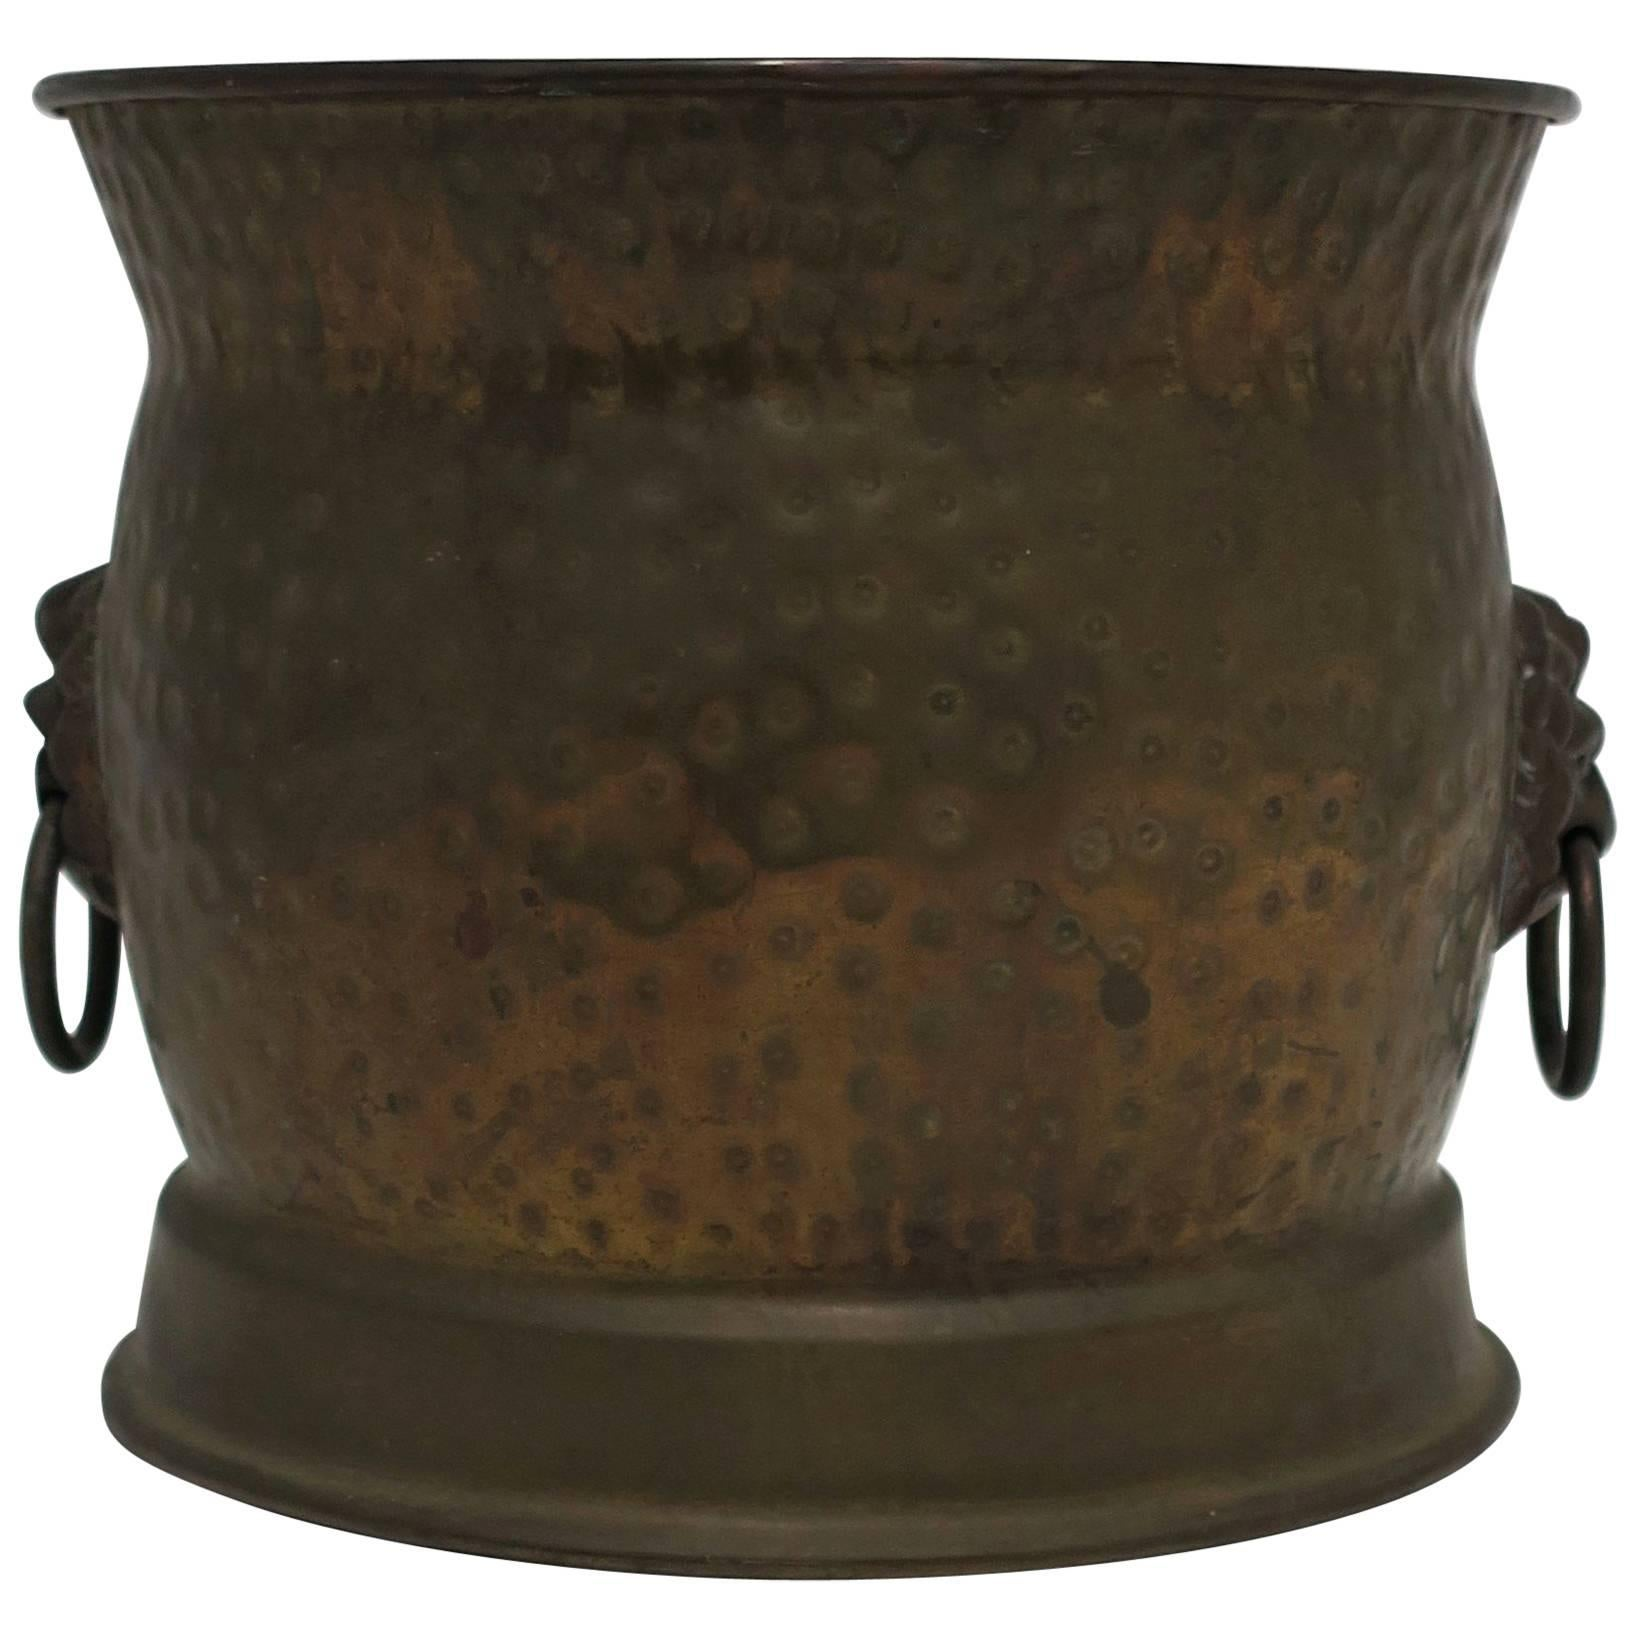 English Brass Plant Pot Holder Cachepot with Lion Head Detail, ca. 20th c.